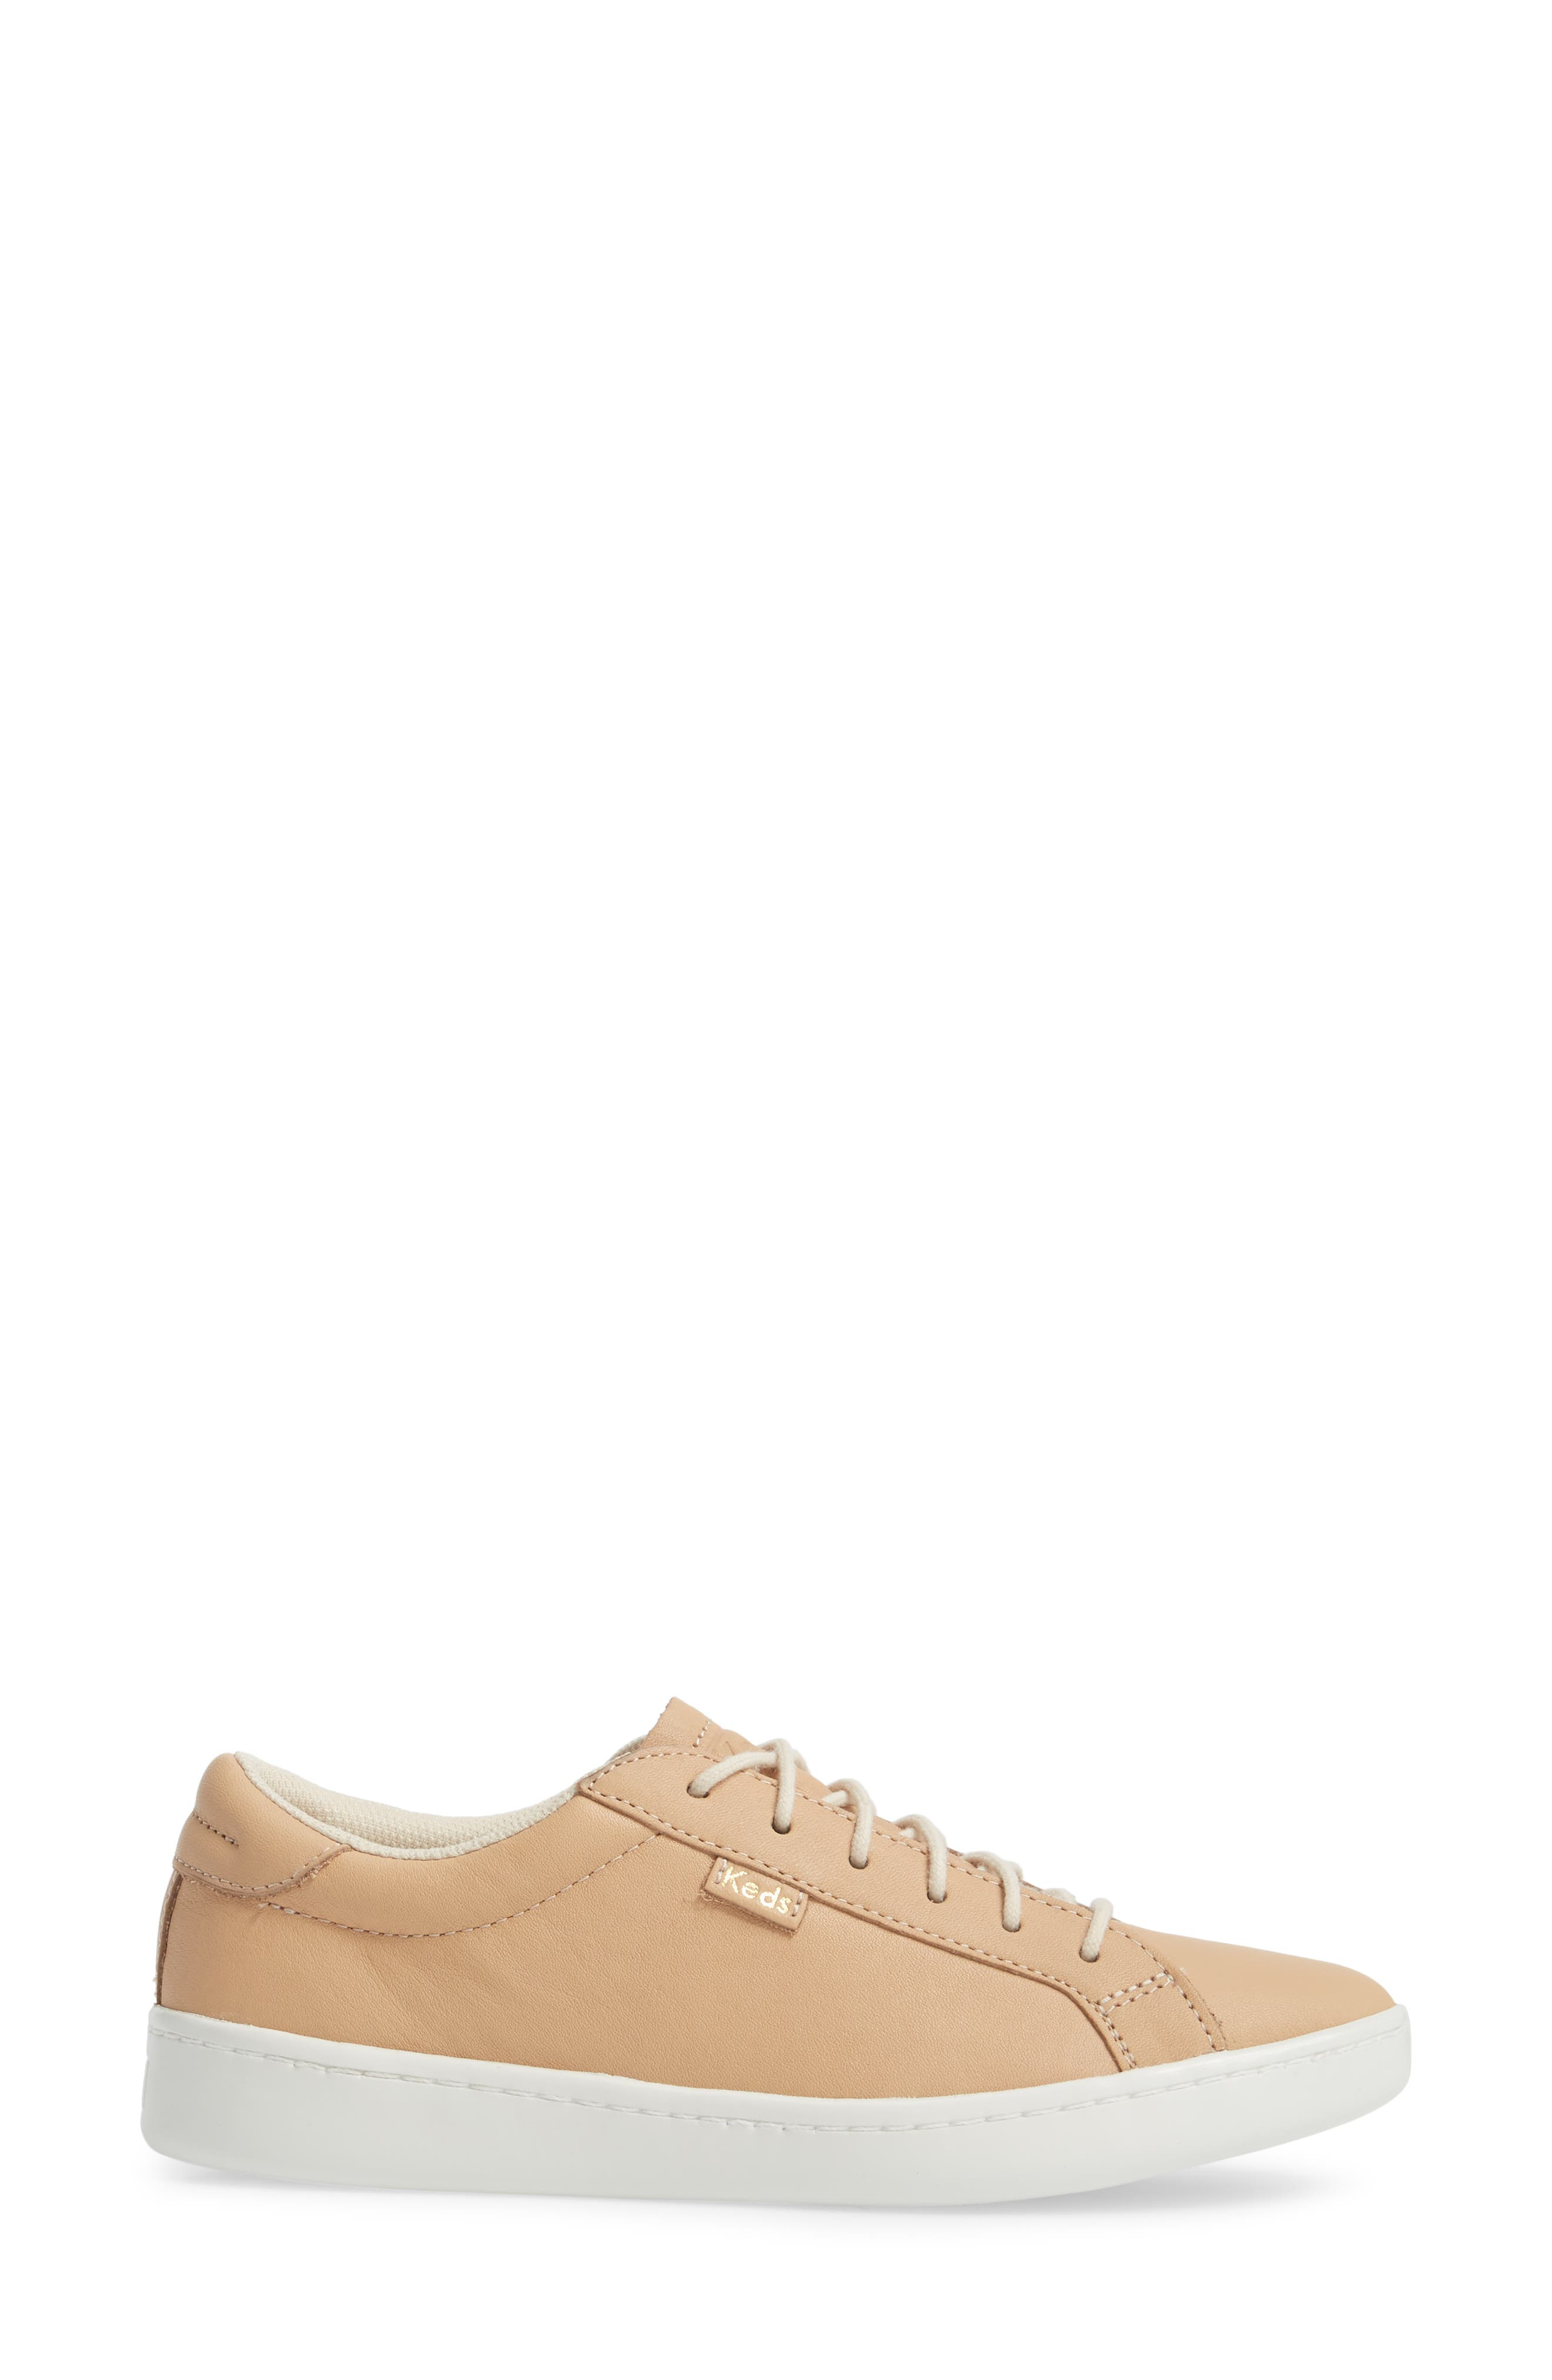 Ace Leather Sneaker,                             Alternate thumbnail 3, color,                             Natural